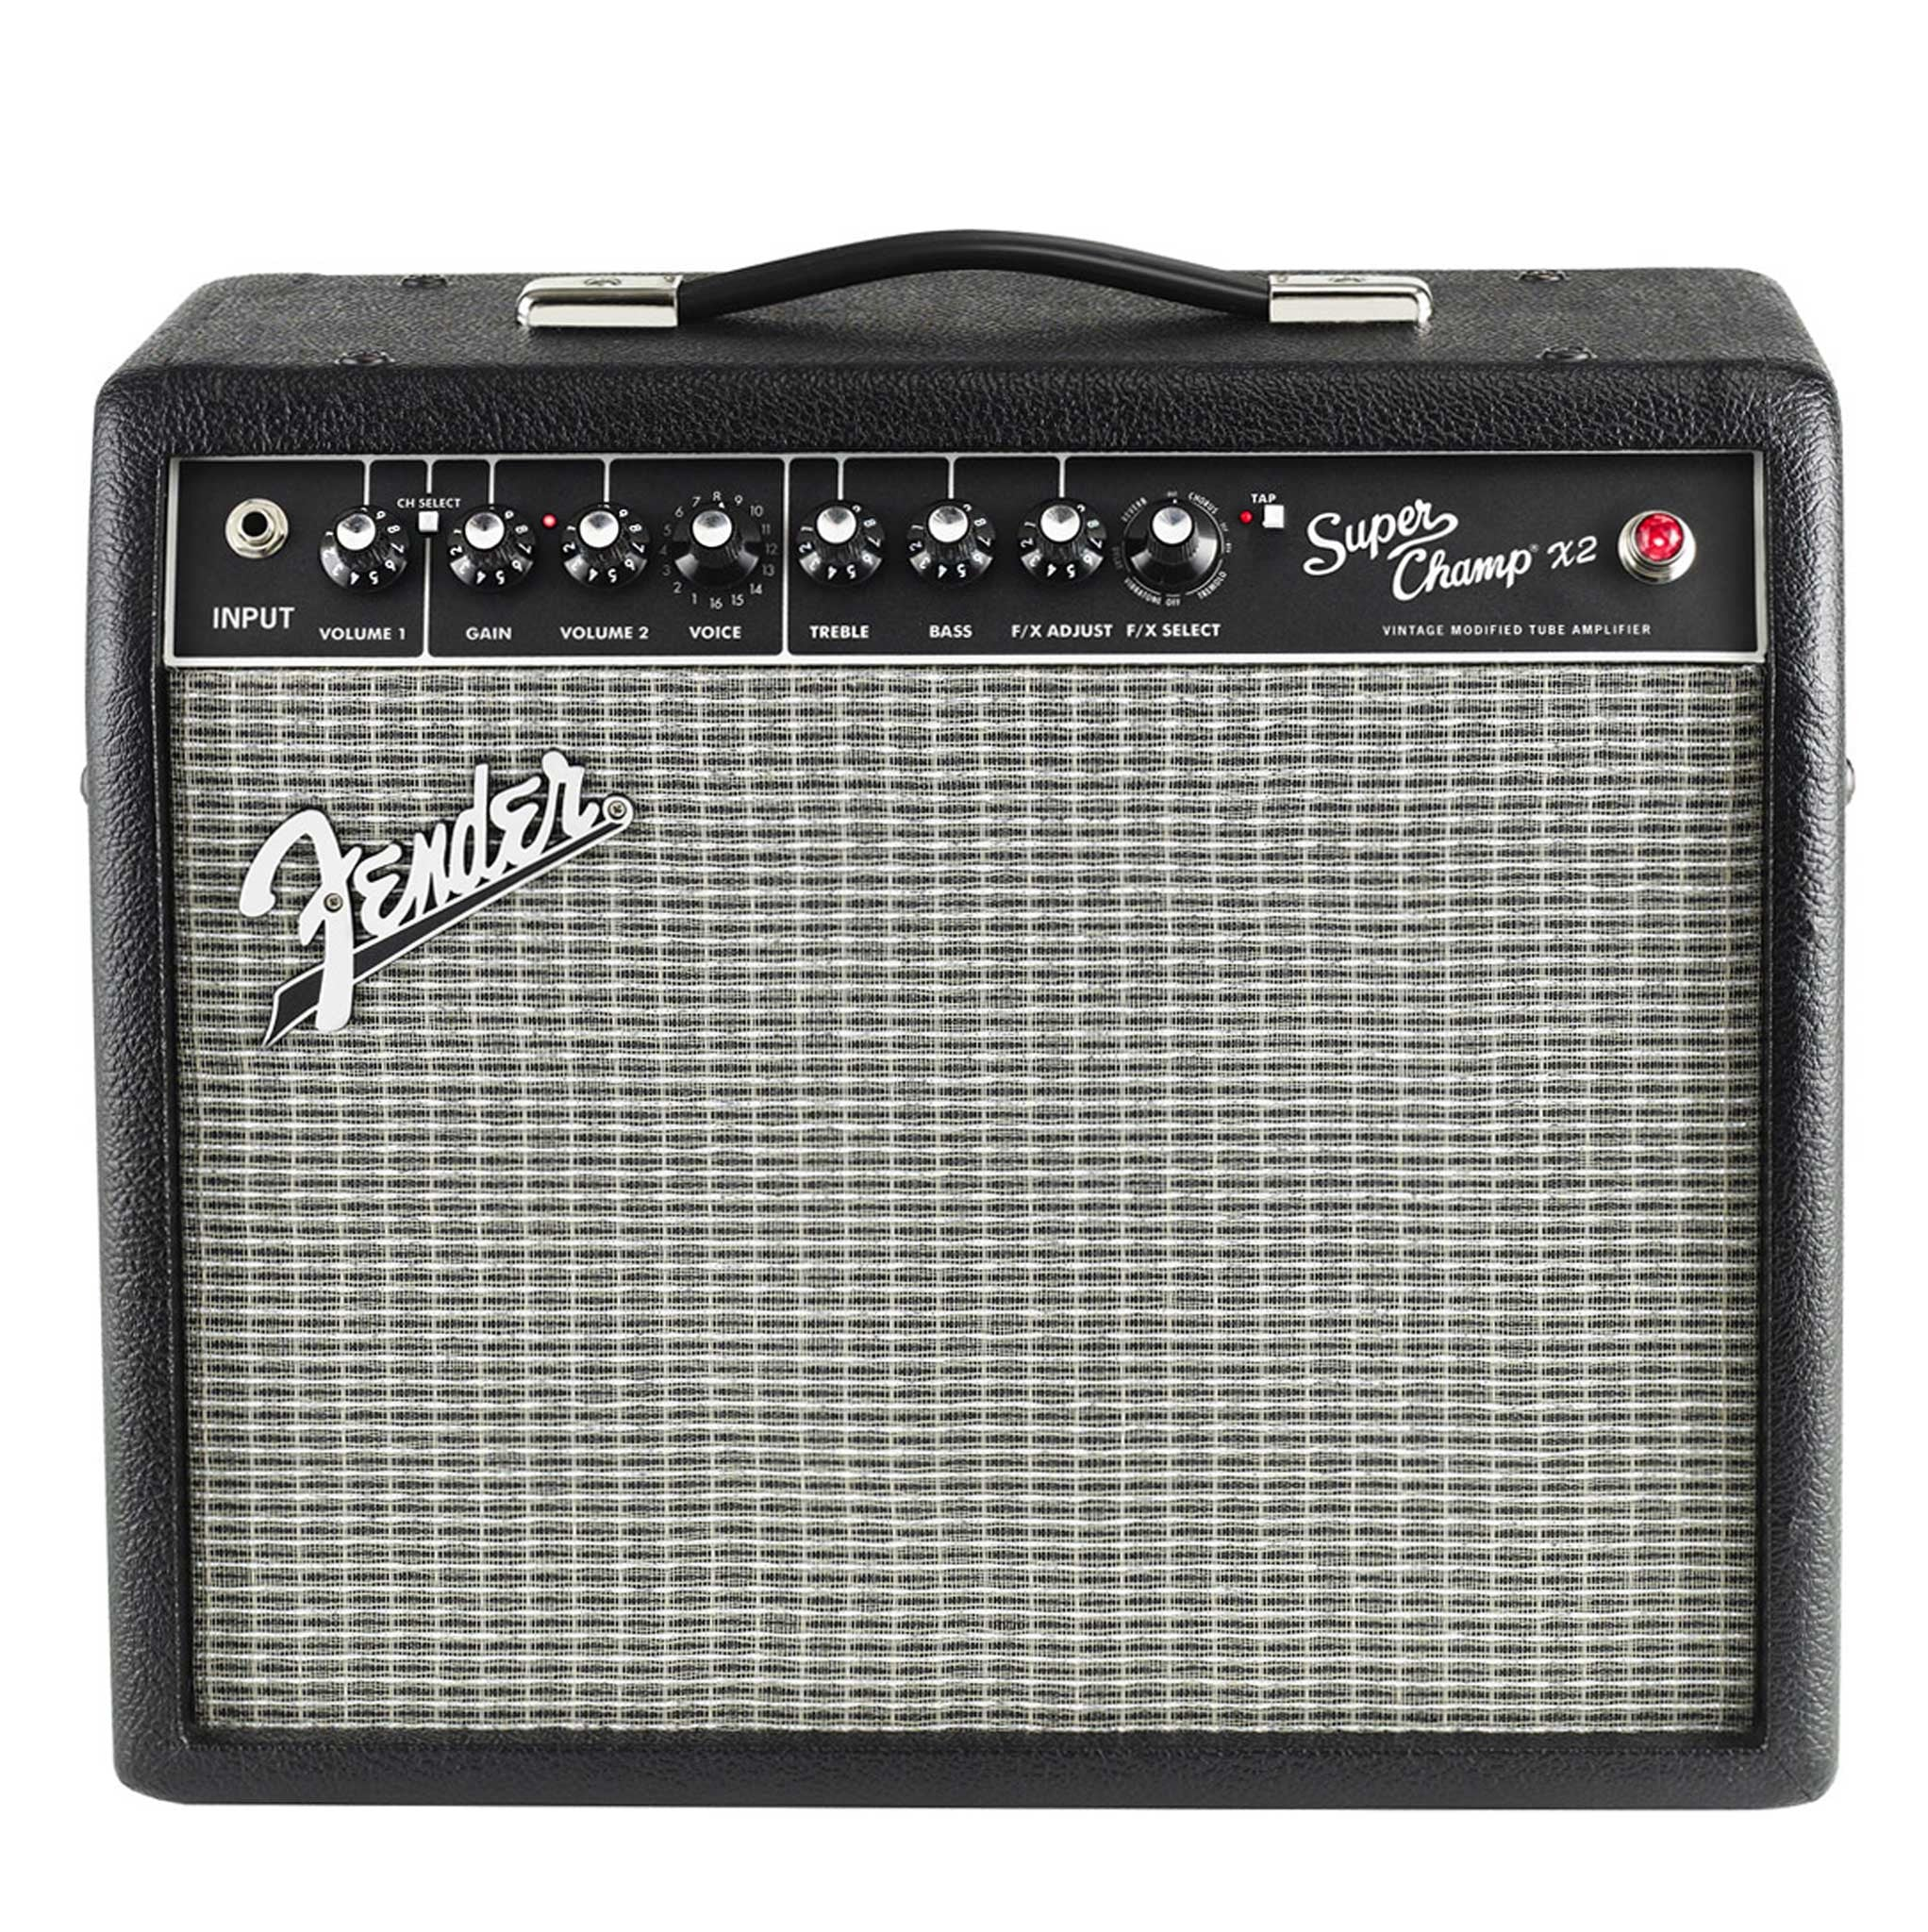 fender super champ x2 15 watt tube amp with effects and usb mass street music store. Black Bedroom Furniture Sets. Home Design Ideas